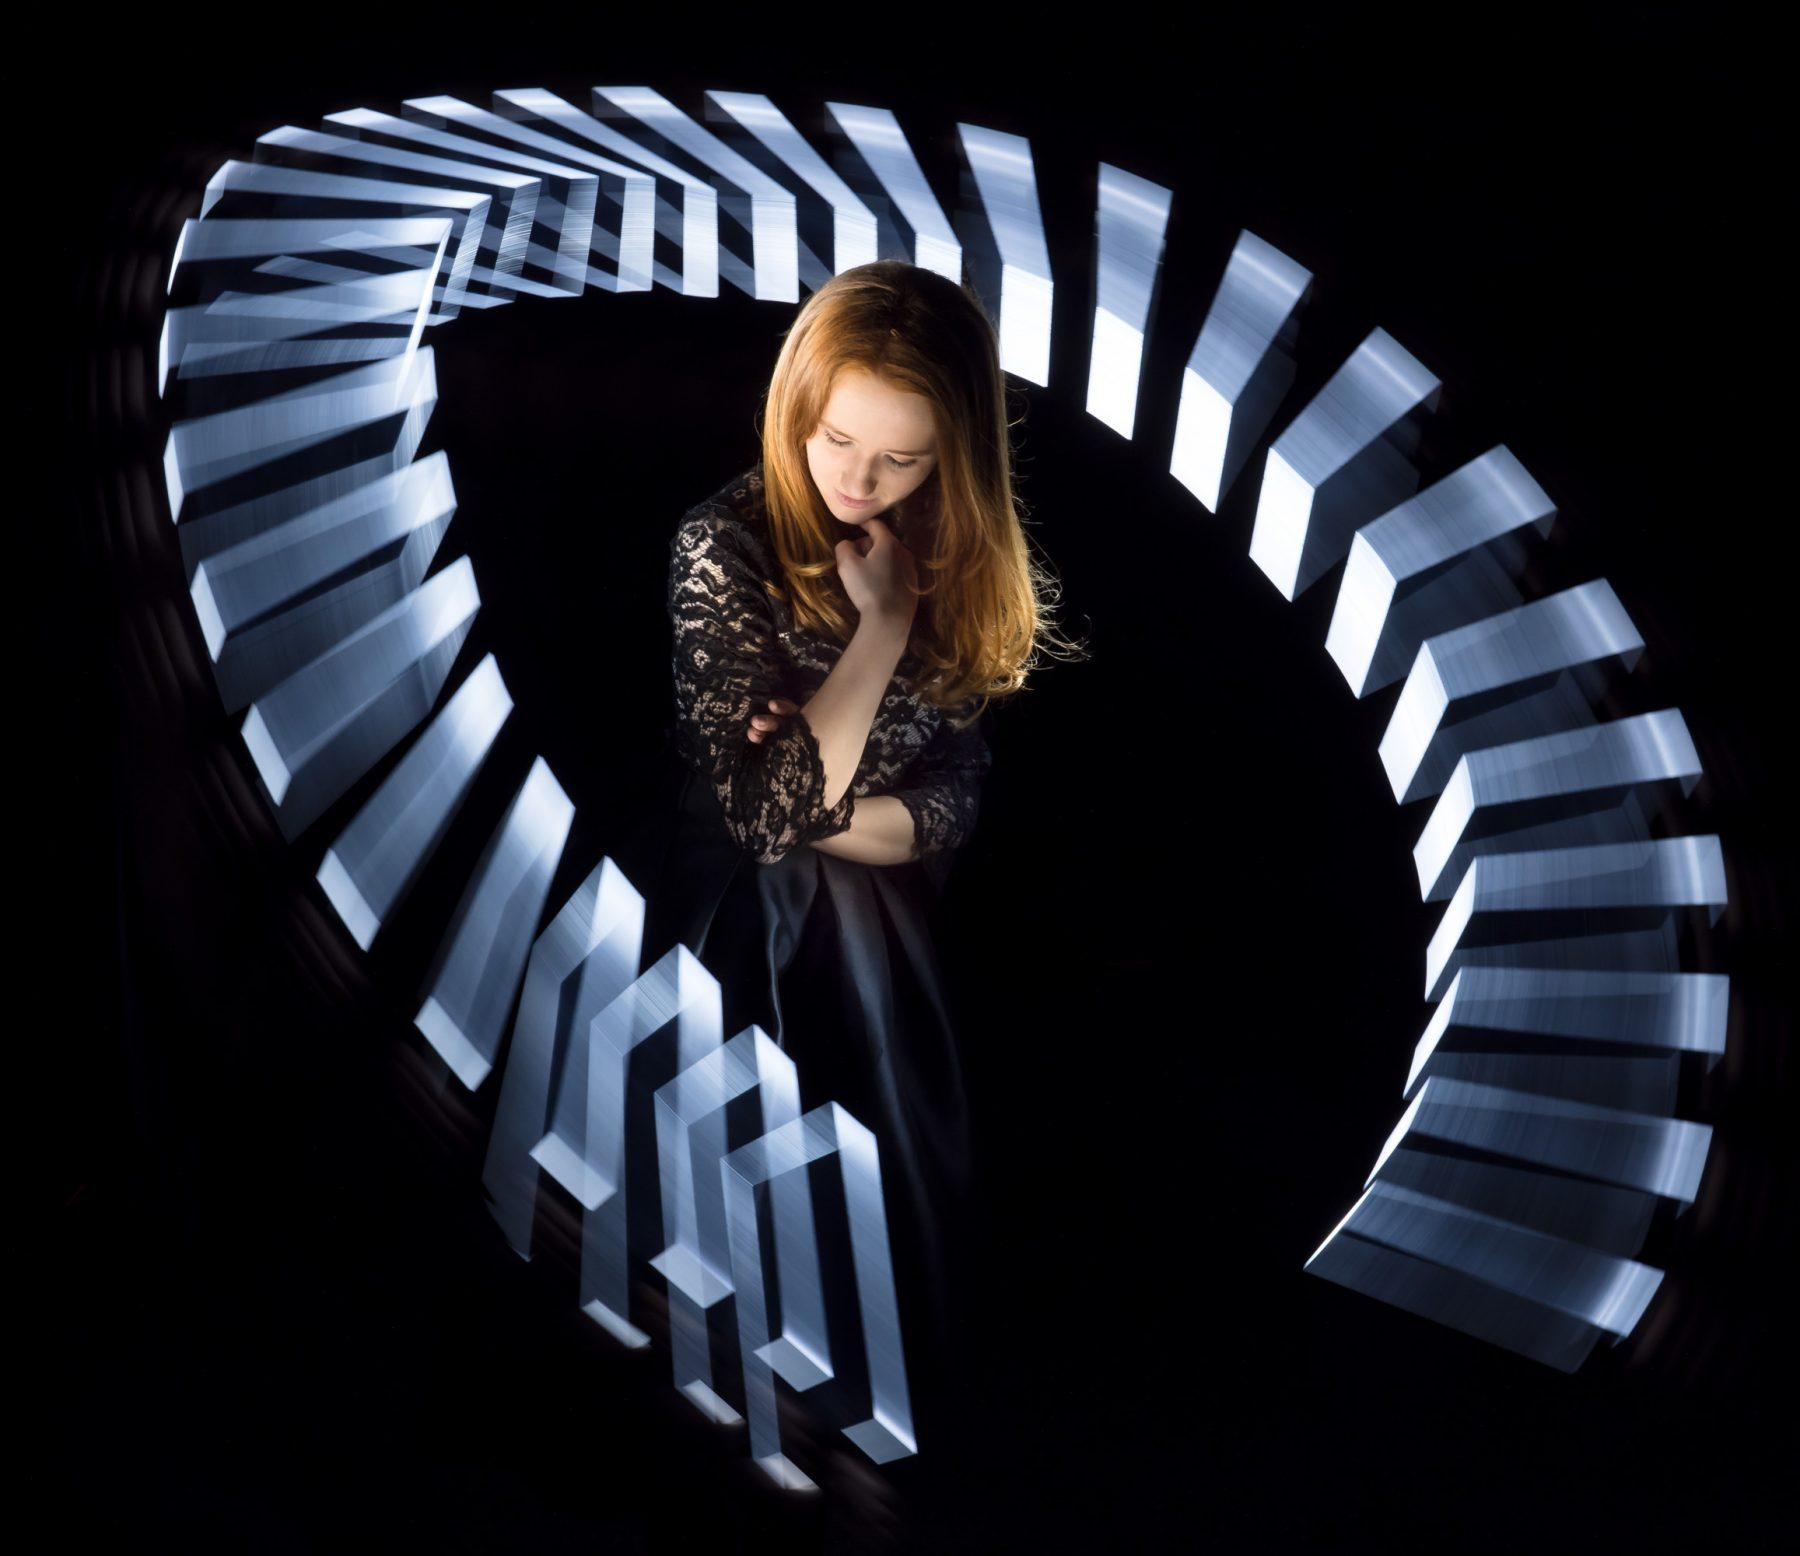 Lightpainting-session with Lena Rodlsberger (8/8)